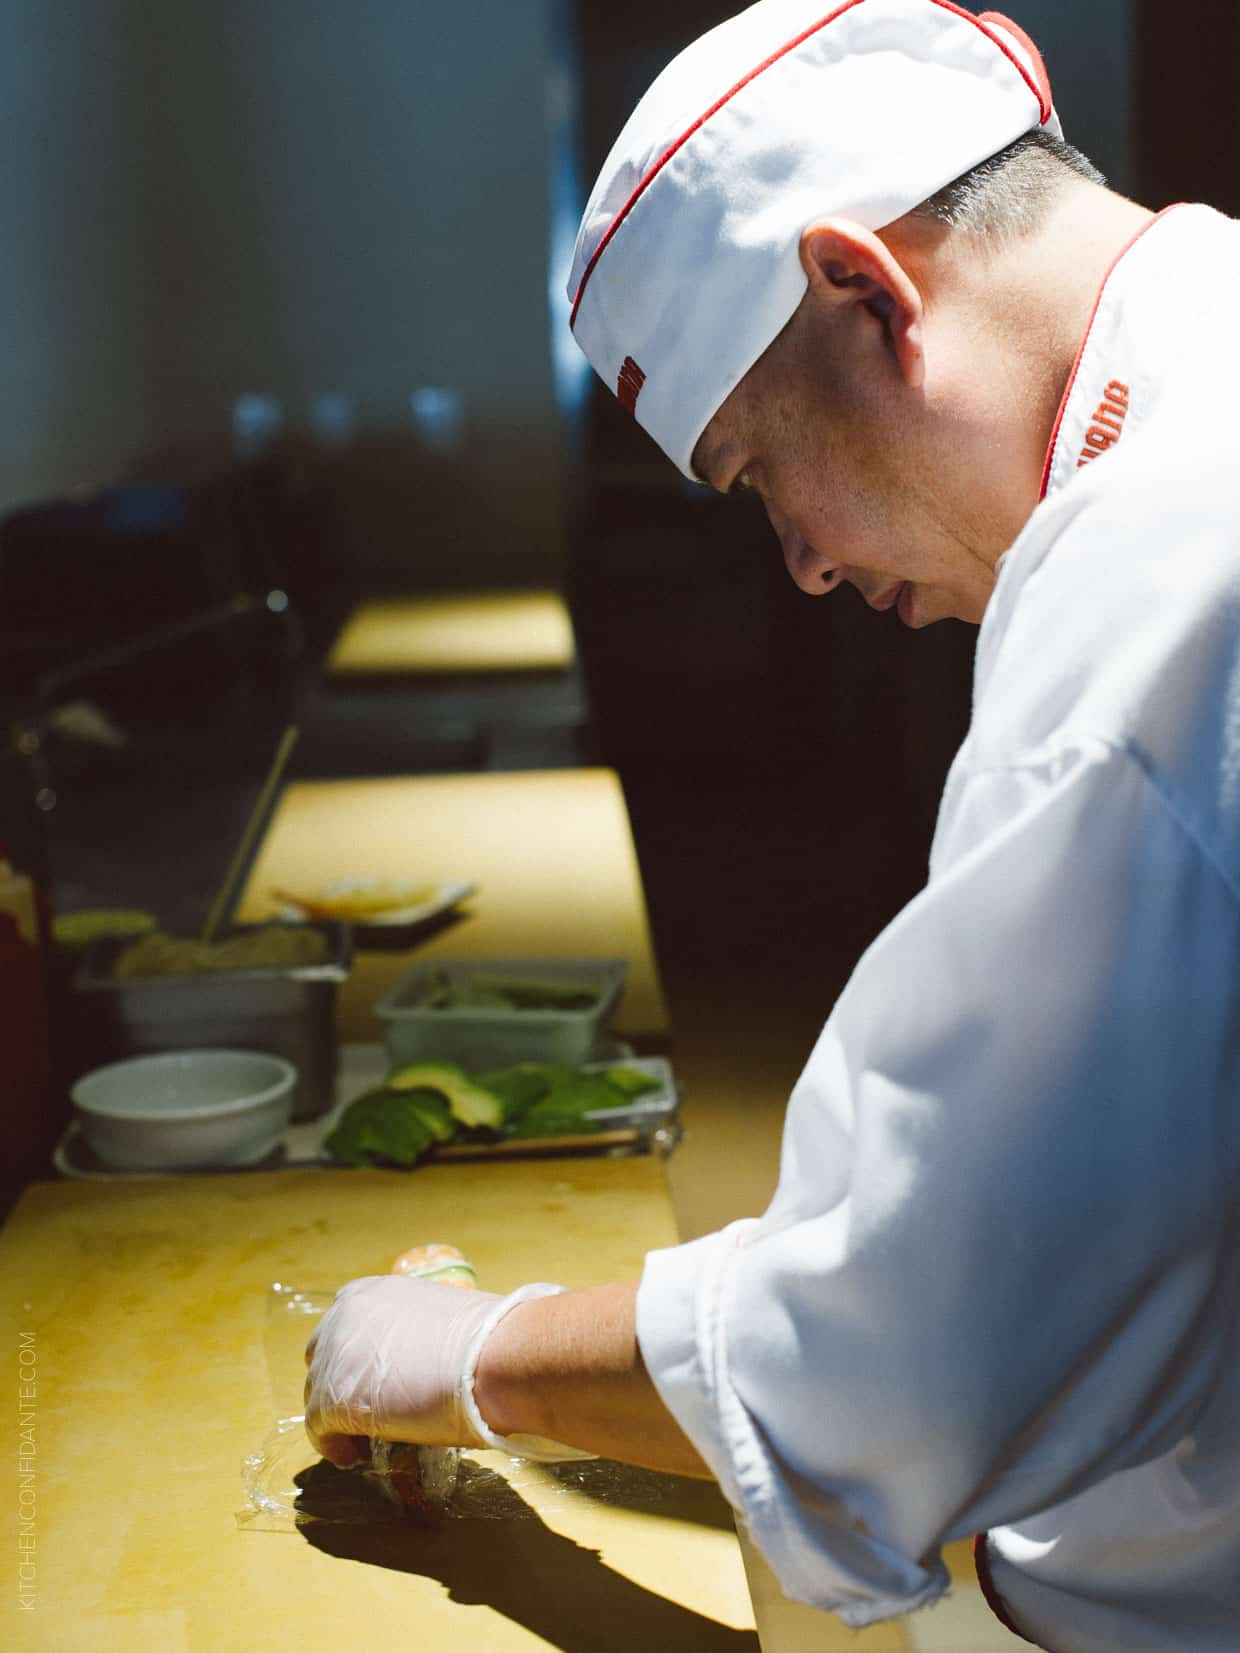 Chefs work their magic to make beautiful sushi.